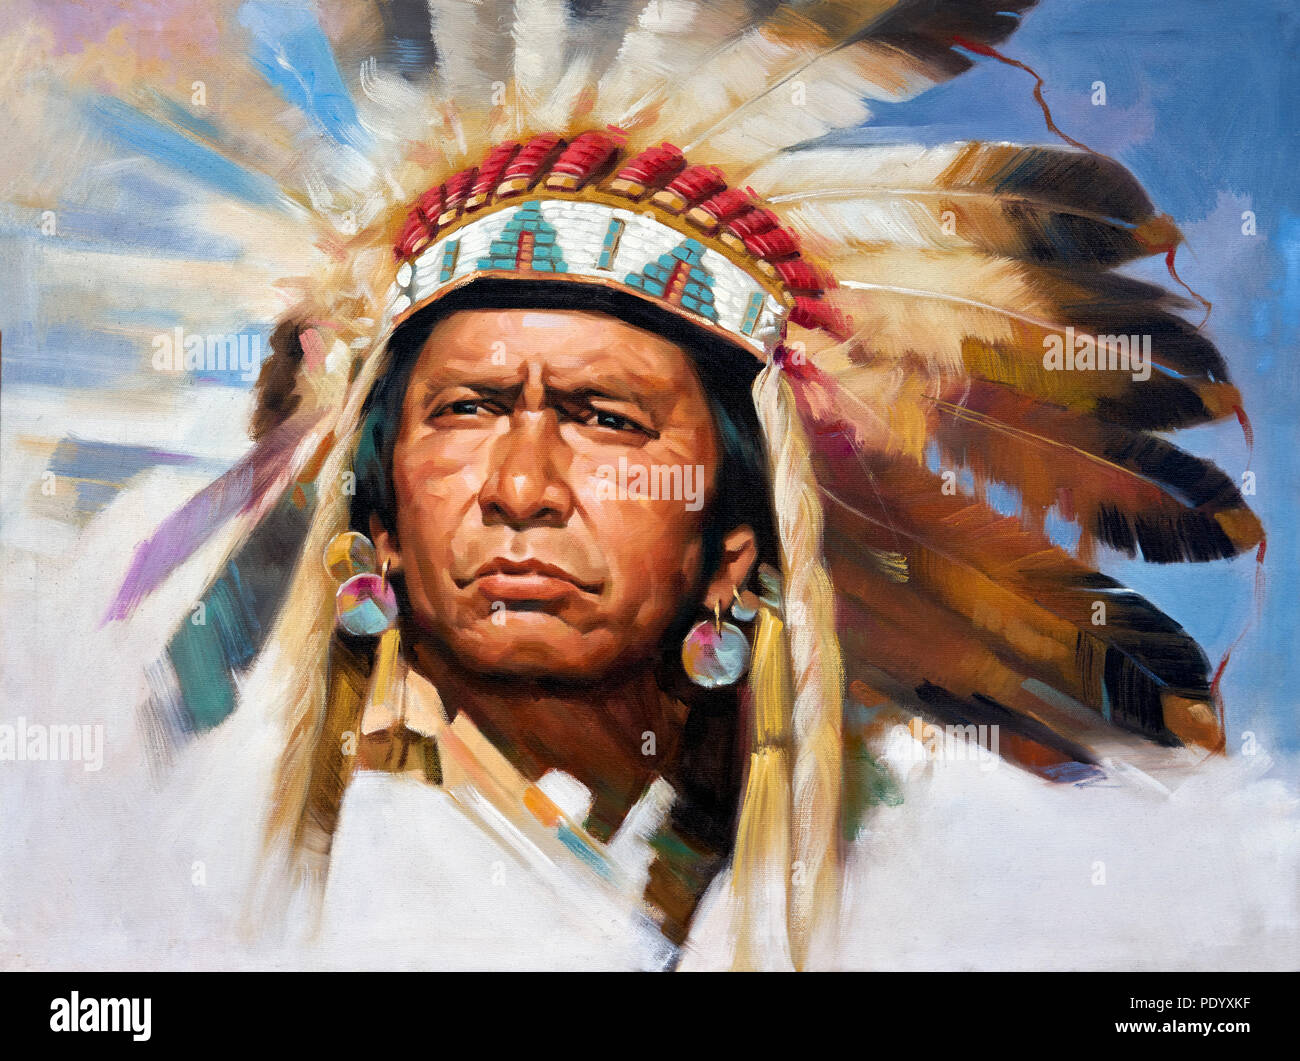 cb1e3efed Painting of a Native American Indian Chief in full headdress - Stock Image